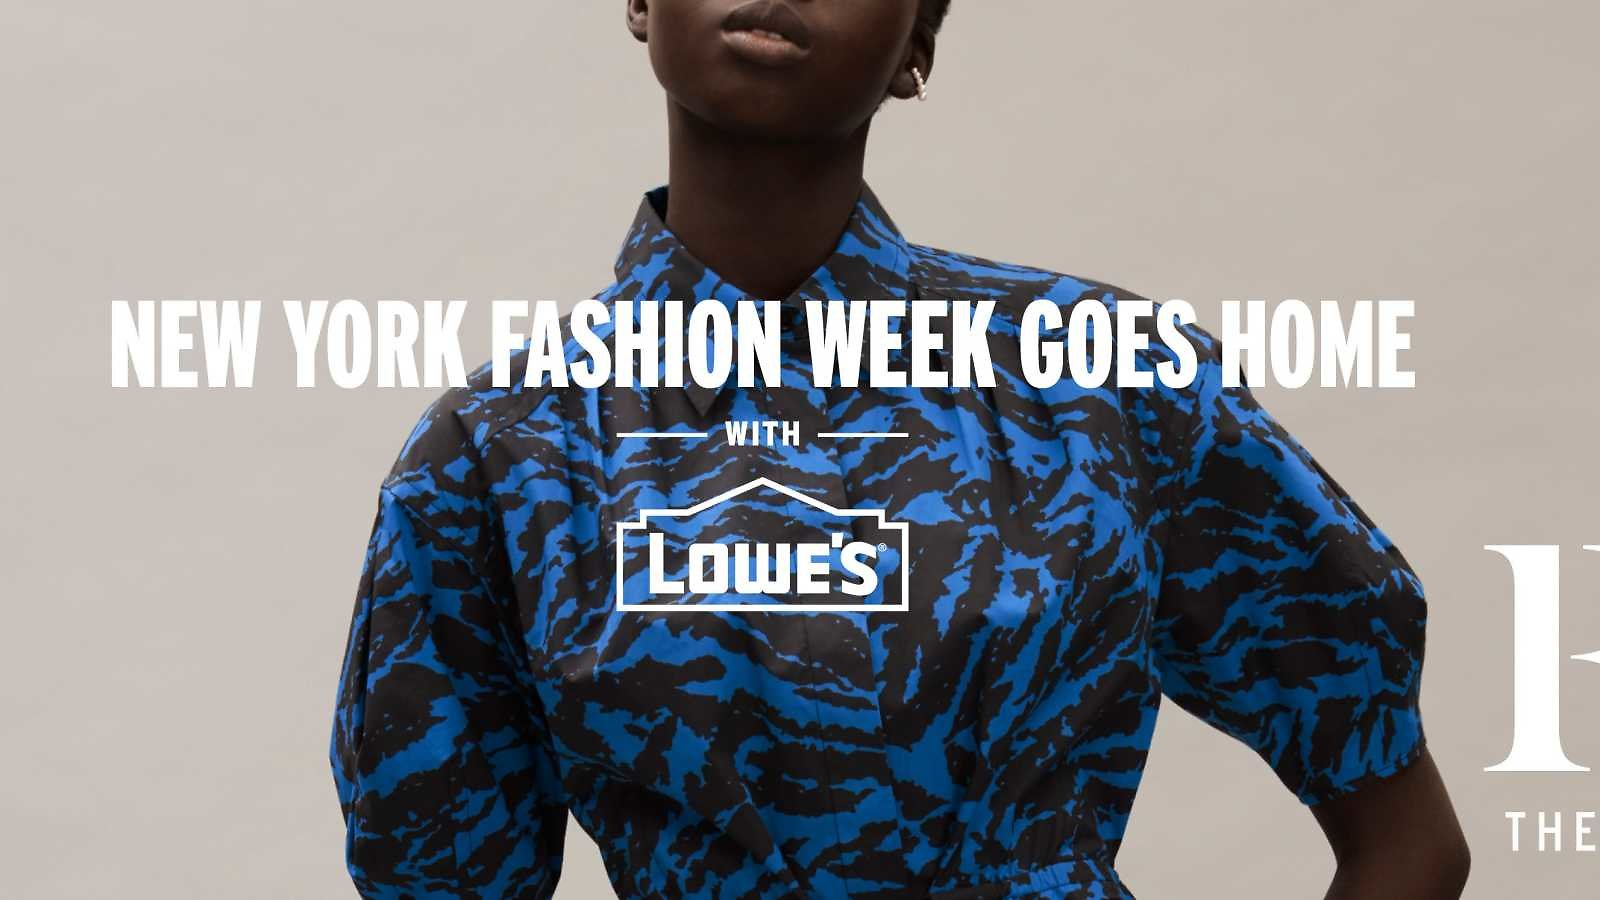 Lowe's Brings New York Fashion Week 'home' with Curations from Rebecca Minkoff, Jason Wu and Christian Siriano